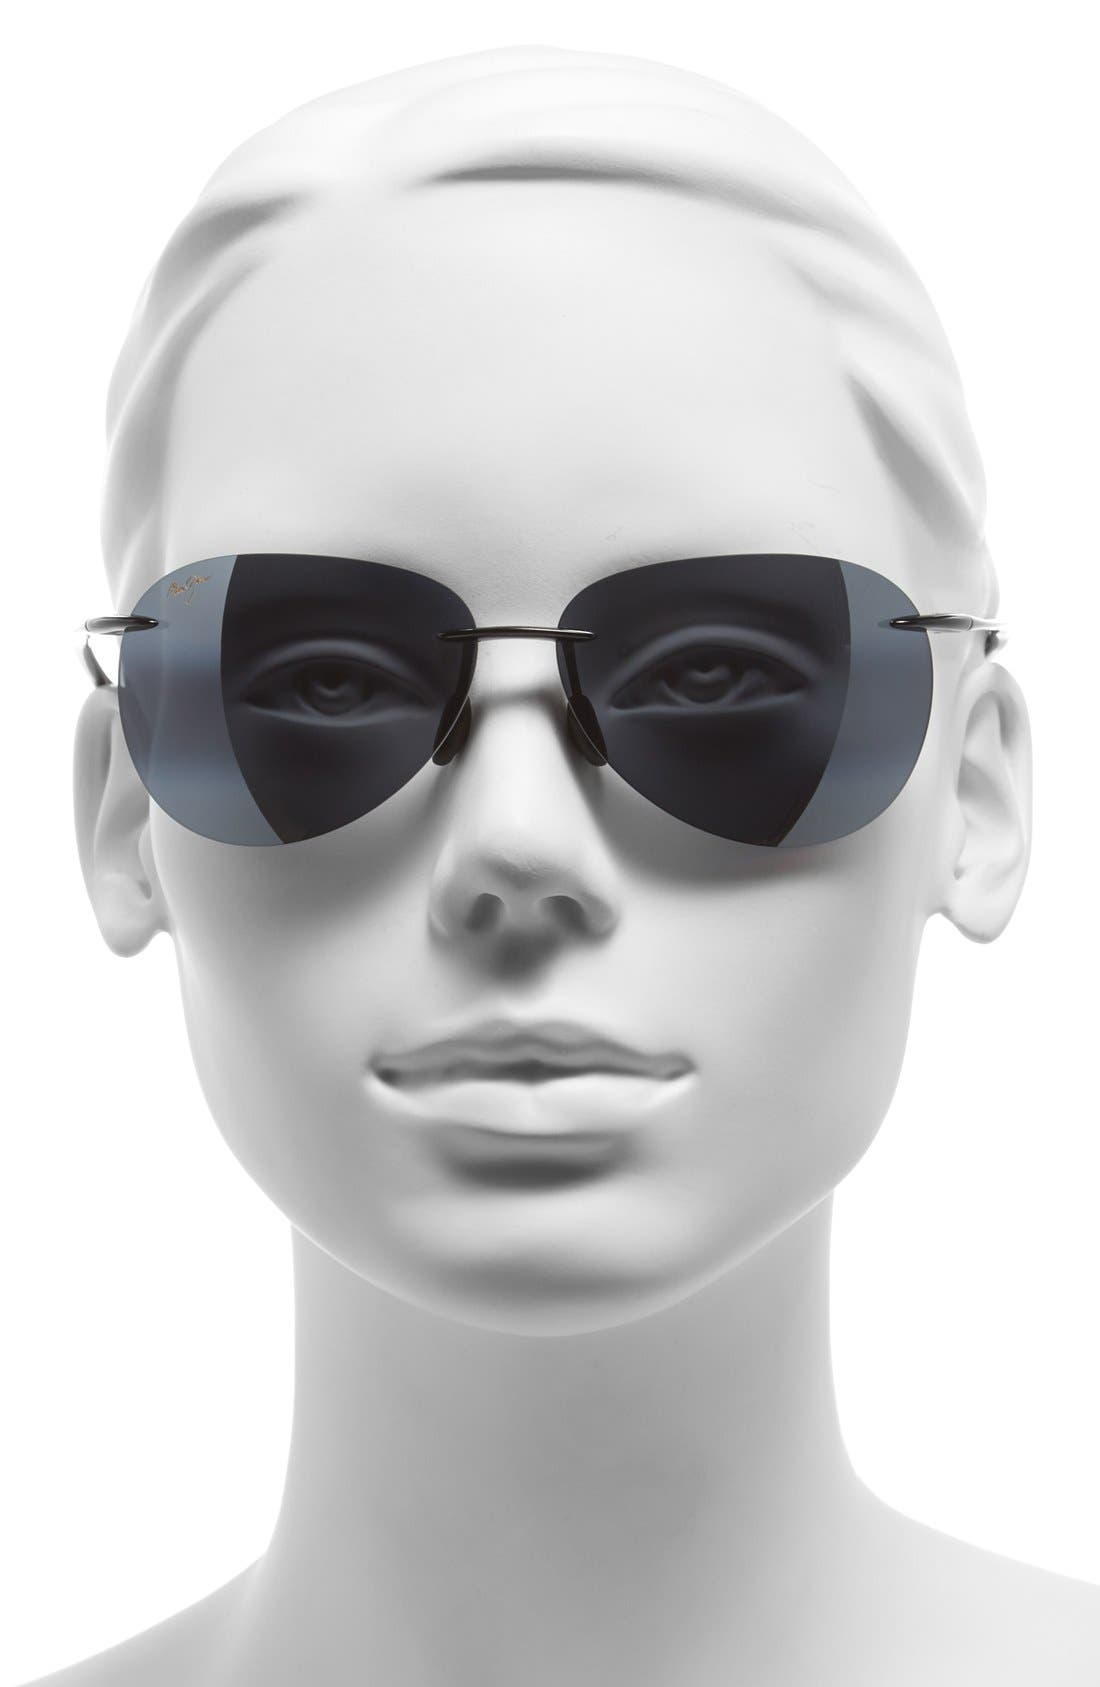 Sugar Beach 62mm PolarizedPlus2<sup>®</sup> Rimless Sunglasses,                             Alternate thumbnail 2, color,                             Gloss Black/ Neutral Grey